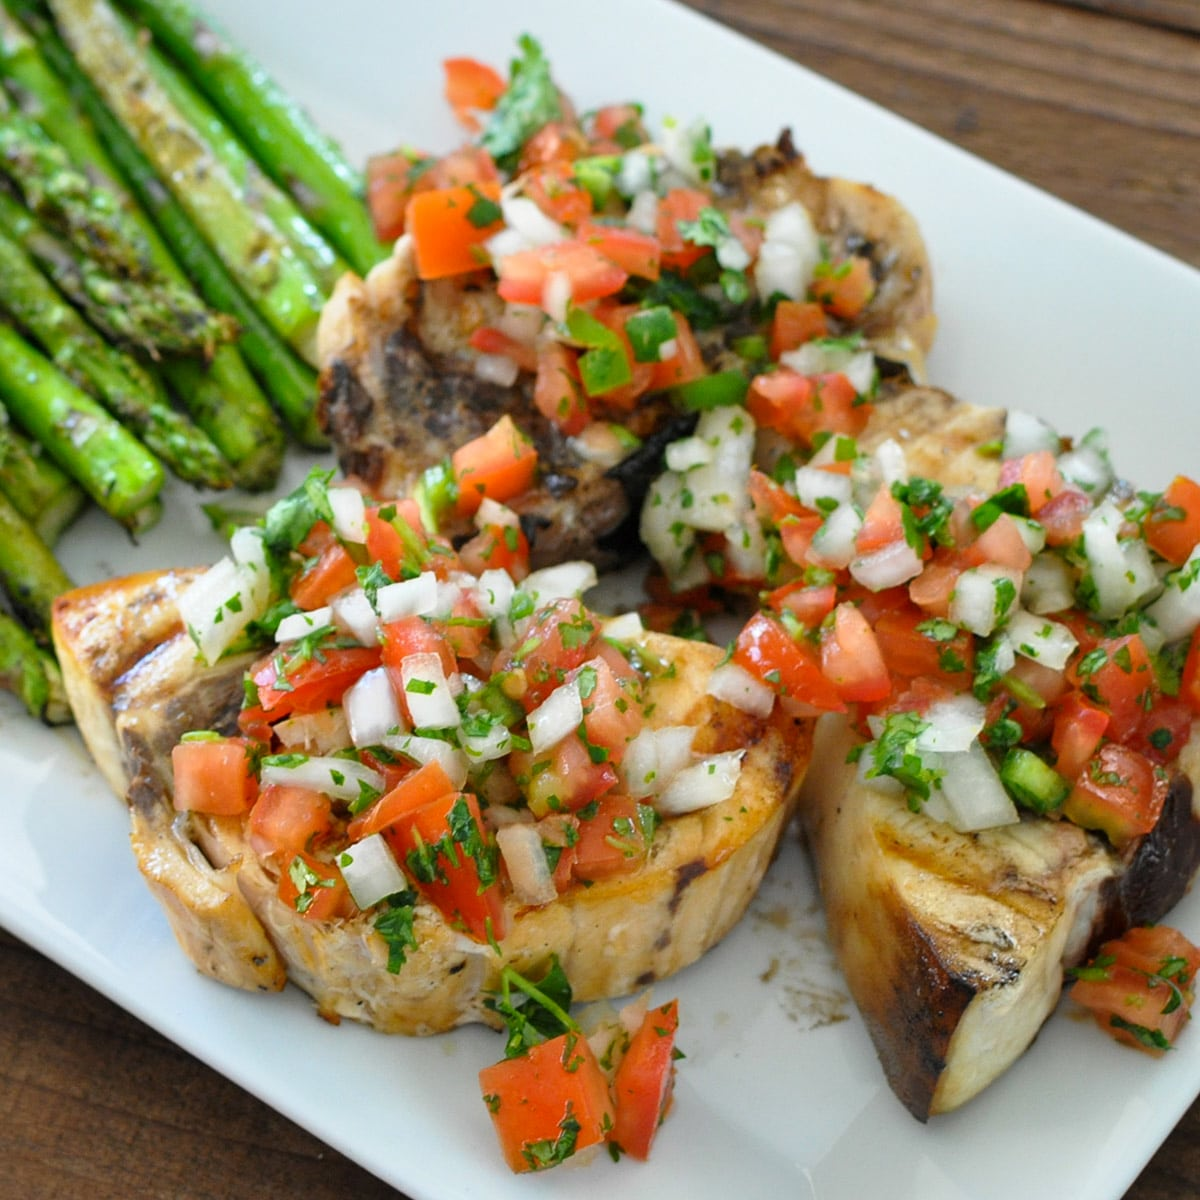 pico de gallo over grilled swordfish steaks next to asparagus